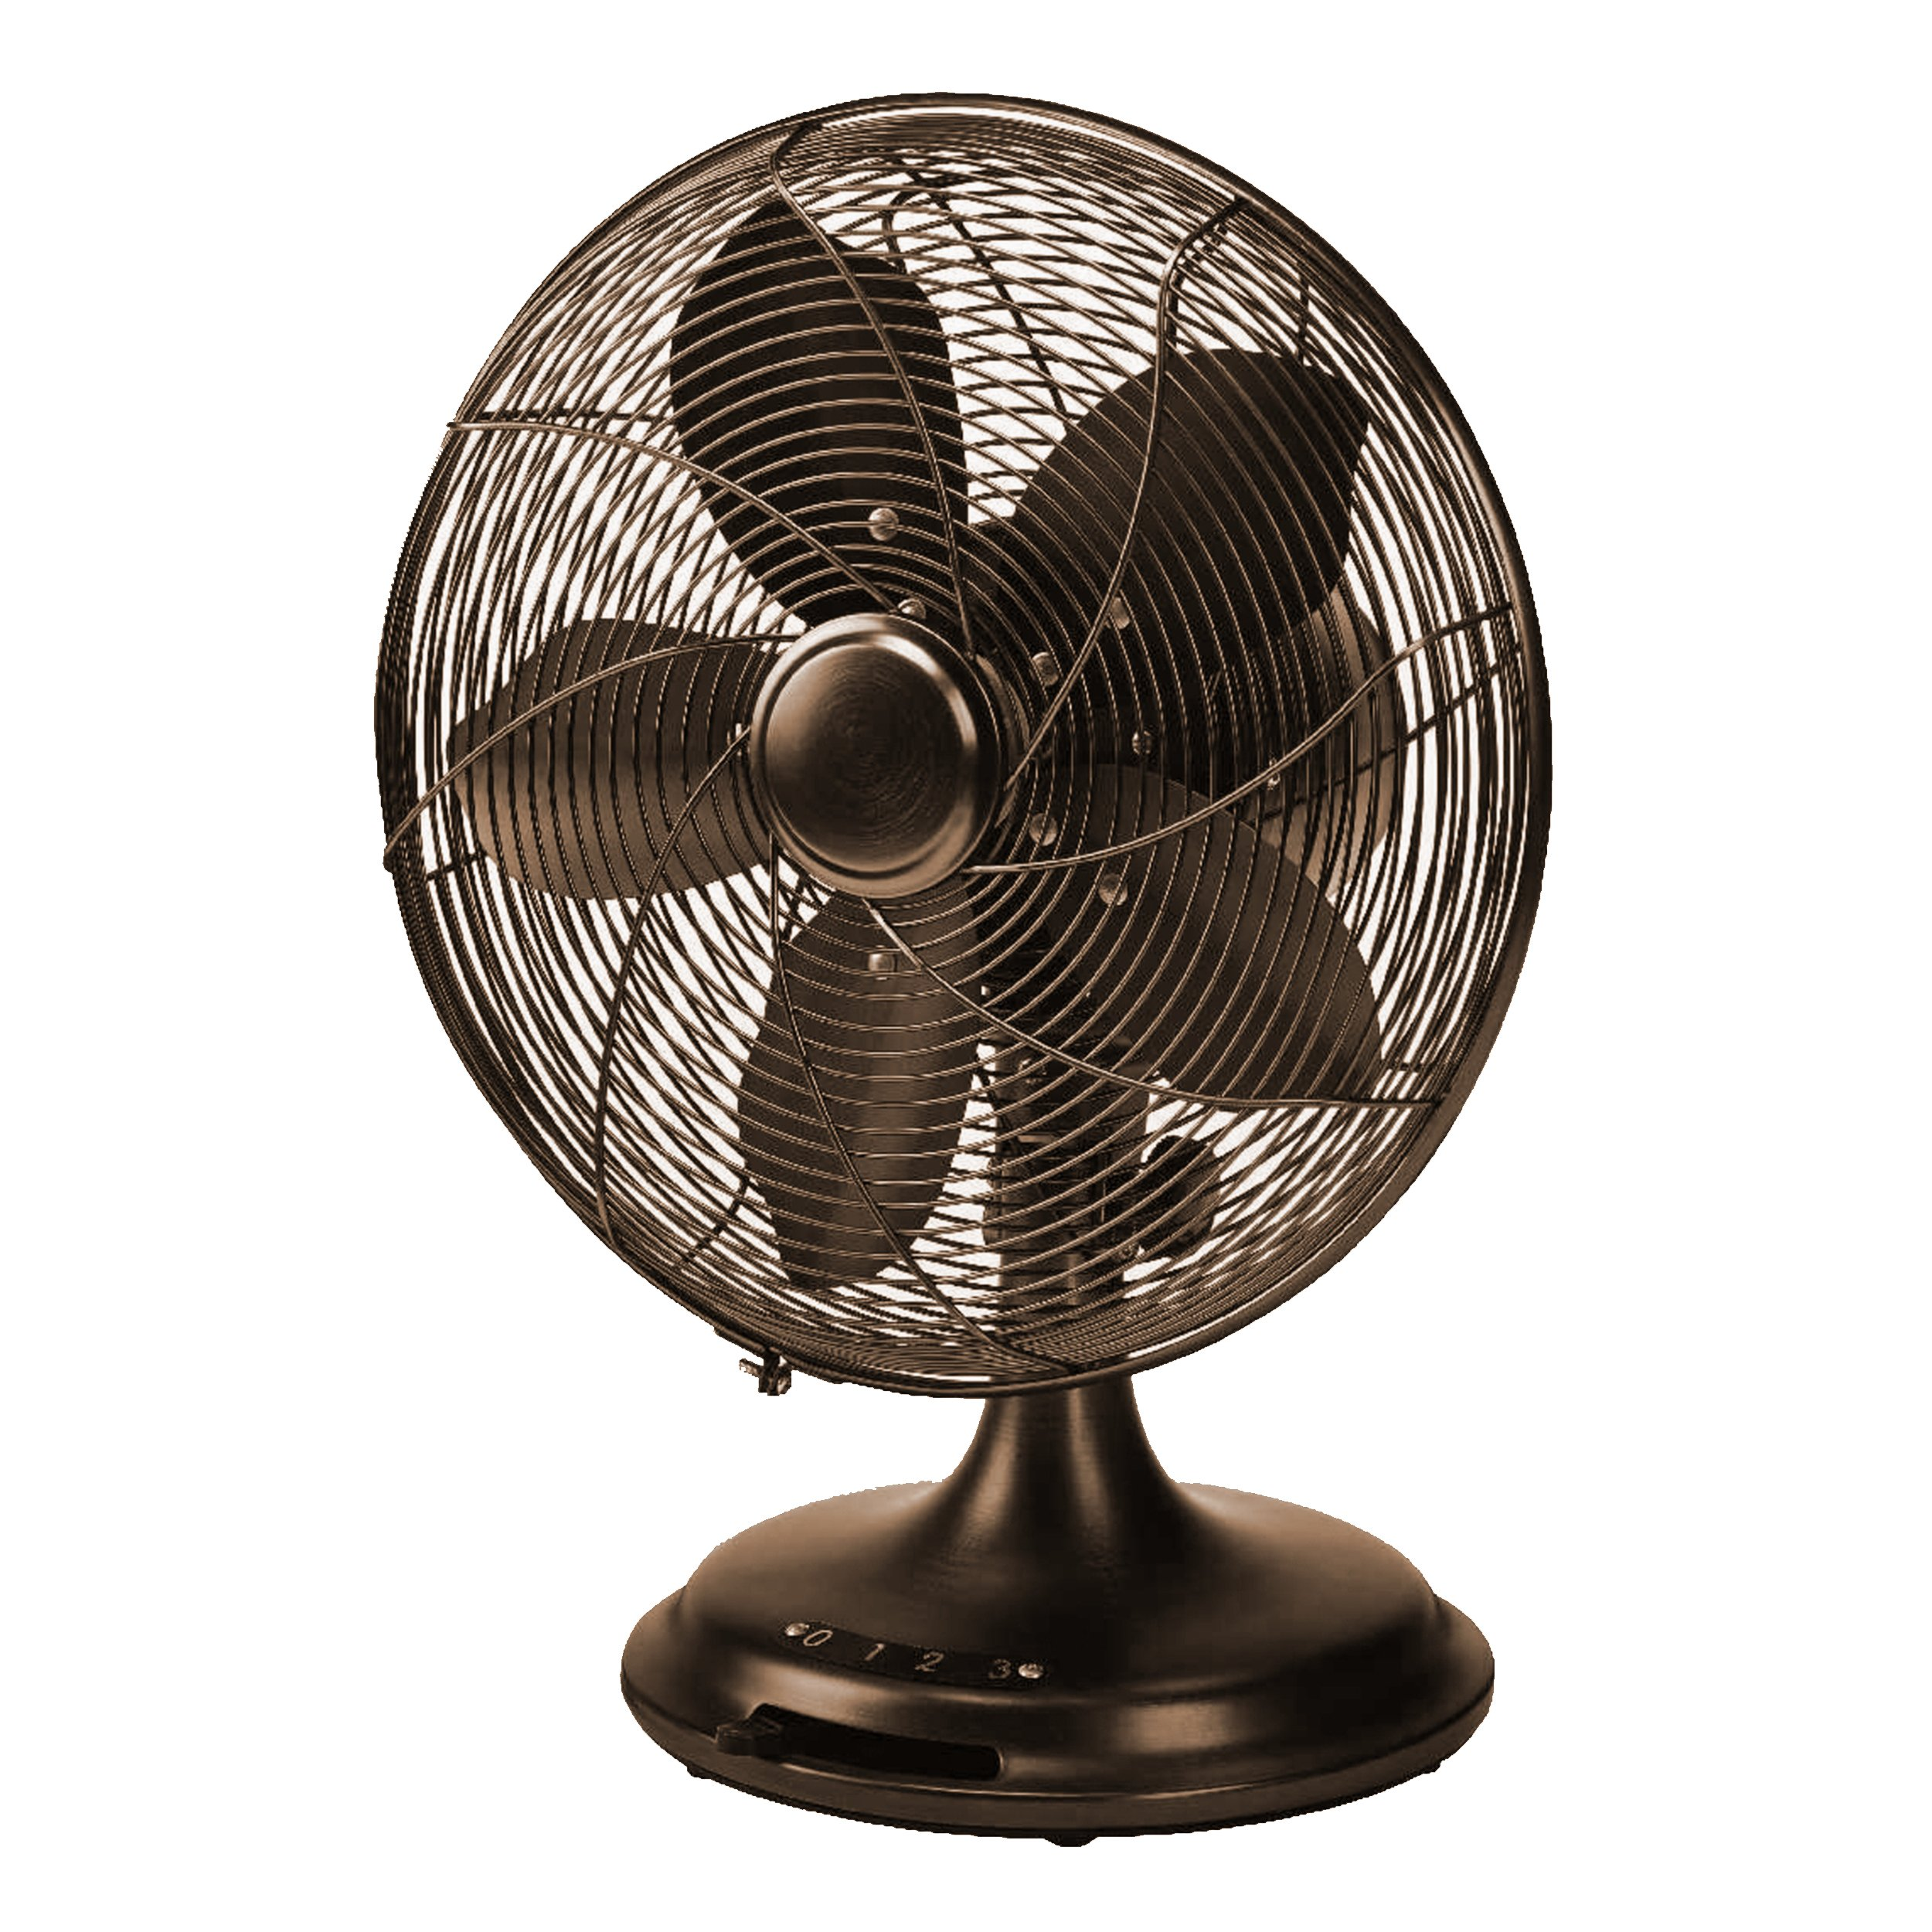 Homevision Technology 12'' Retro Desk Fan, Black (CT40060T) Cooling CT40060T